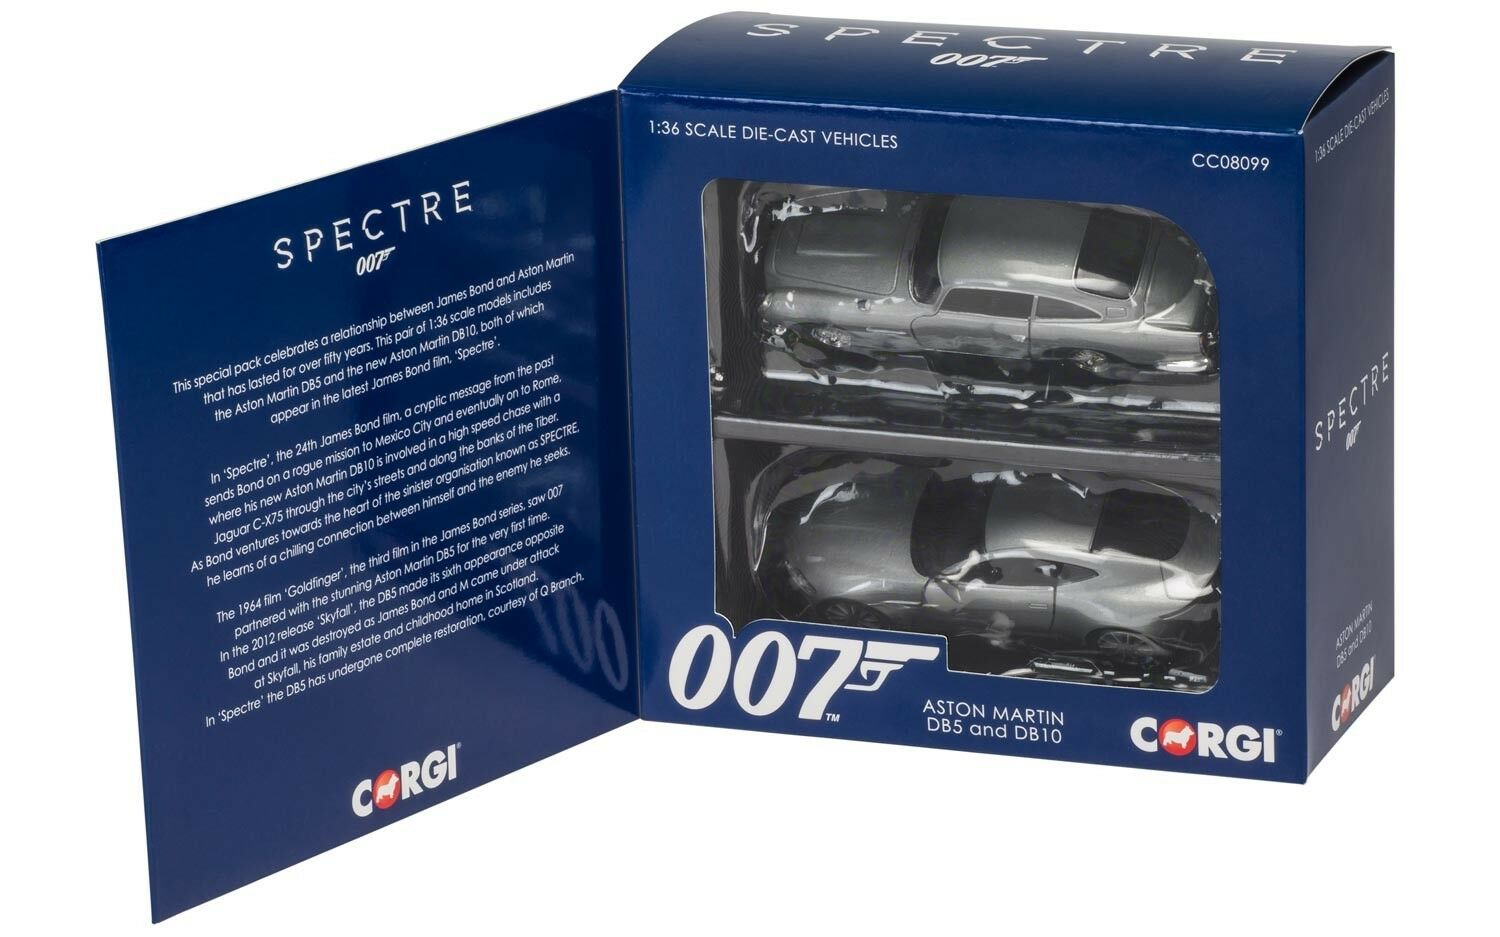 Corgi James Bond 007 Aston Martin Double Paquet Db5 & Db10 Spectre Set Cc08099